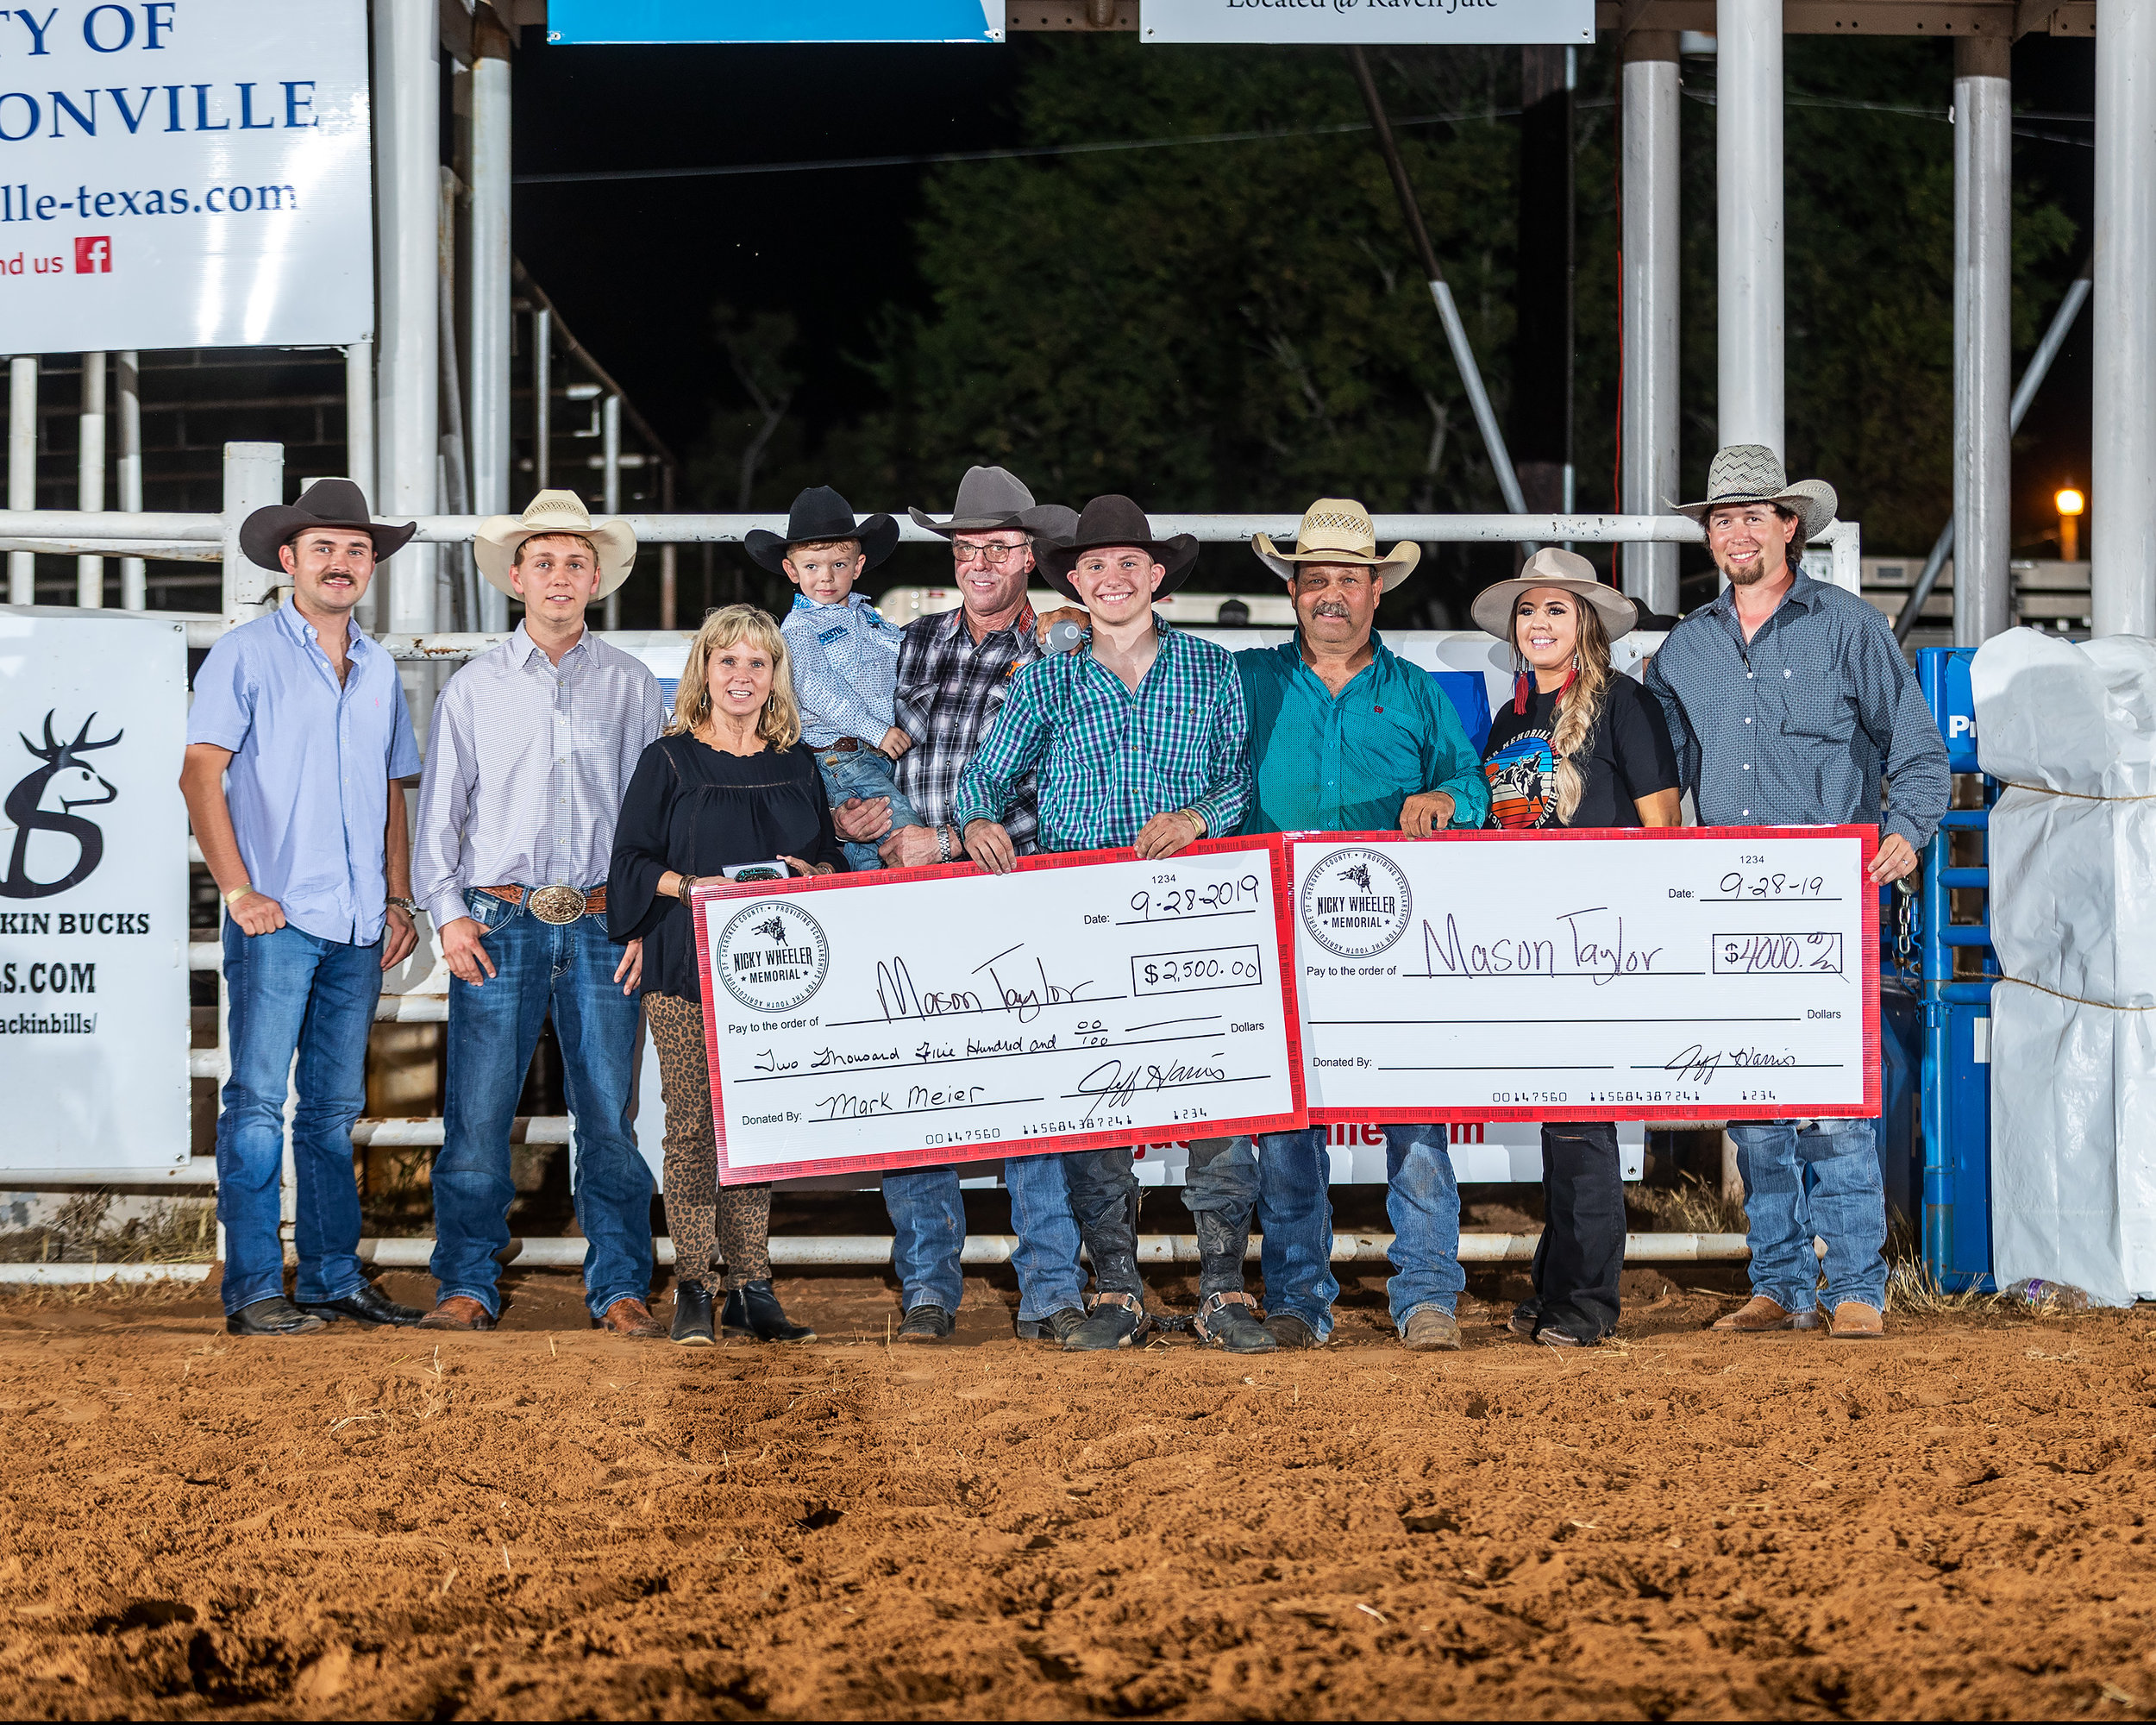 Taylor Claims his first Tuff Hedeman event title and checks from the Wheeler family, Tuff and Ryker Hedeman, Jeff Harris and Haley and Brian Beasley. Photos by Todd Brewer.